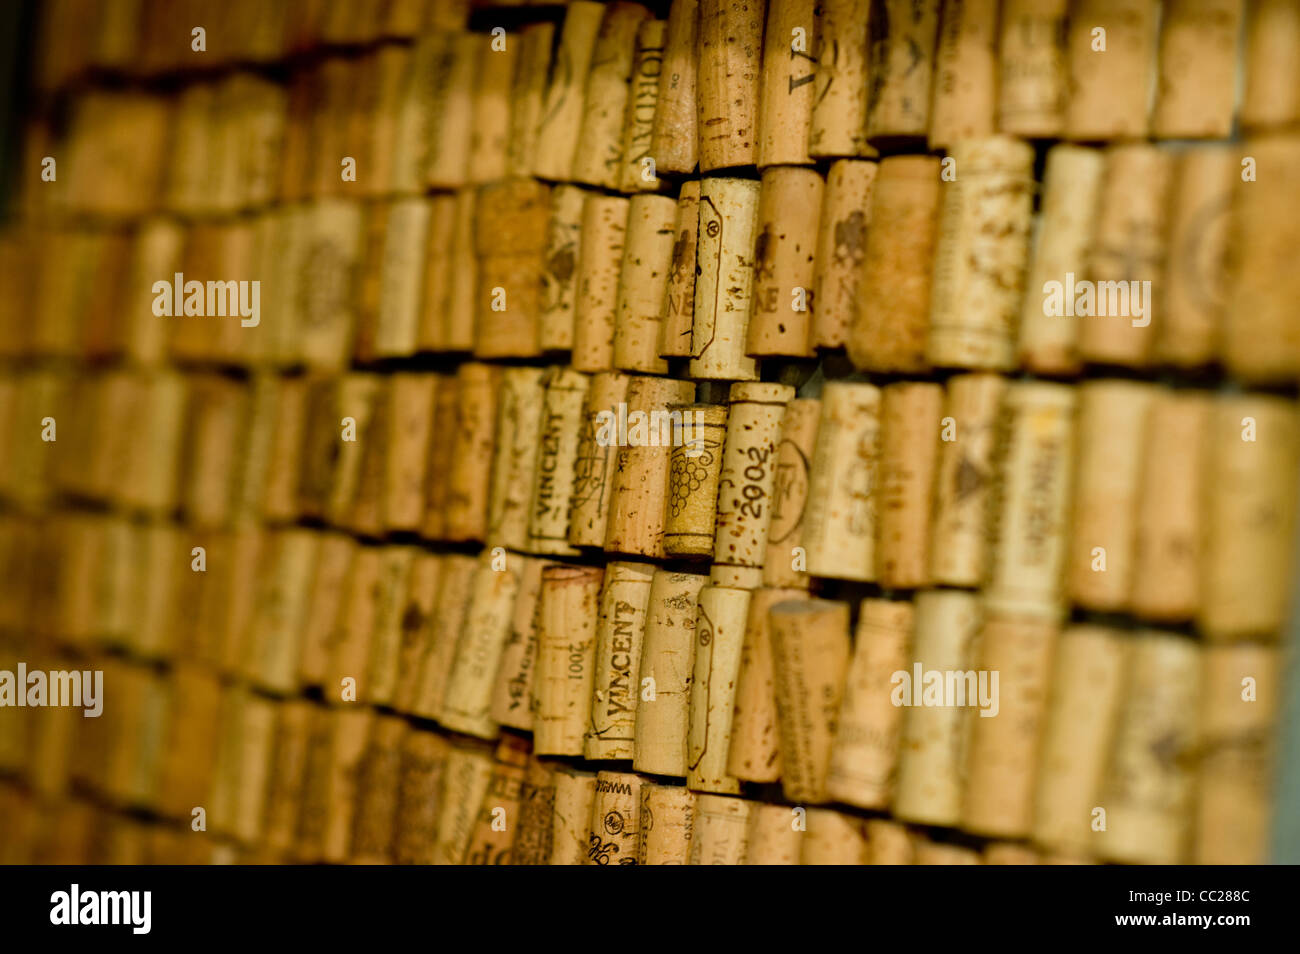 A selection of wine corks - Stock Image